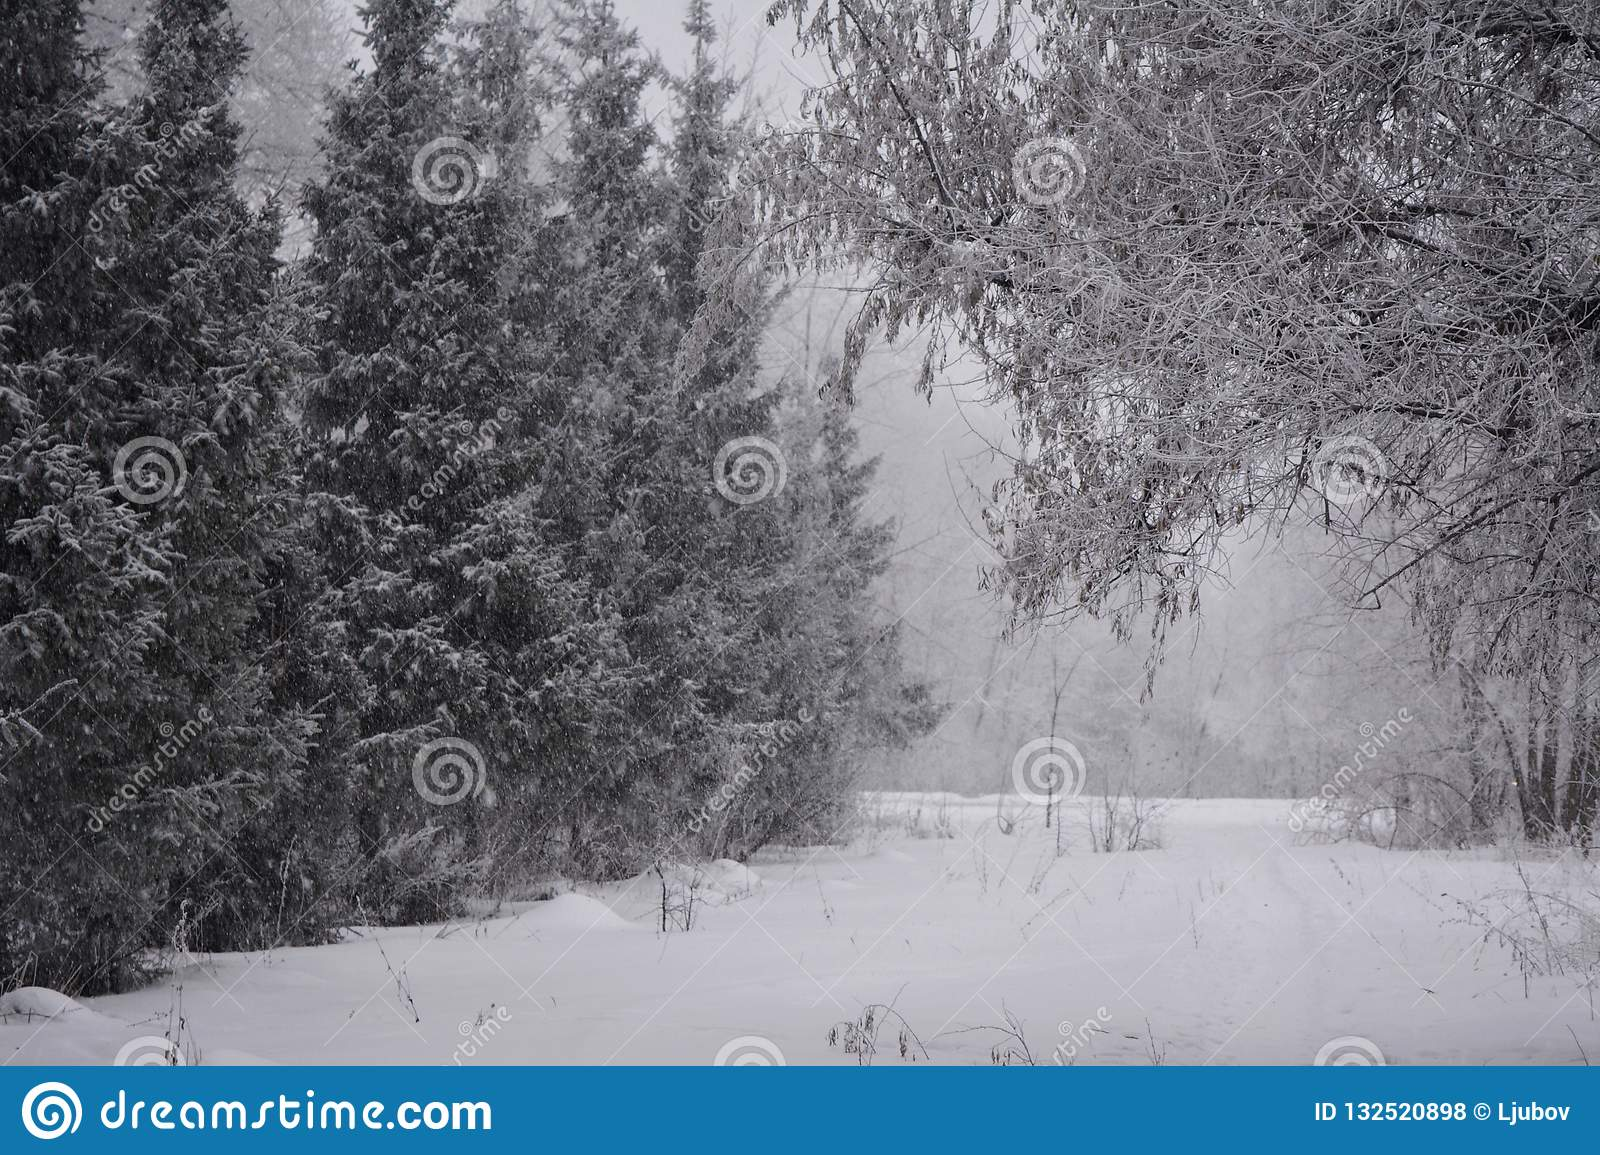 Winter wonderland in a mixed forest. Snowfall in cloudy day.